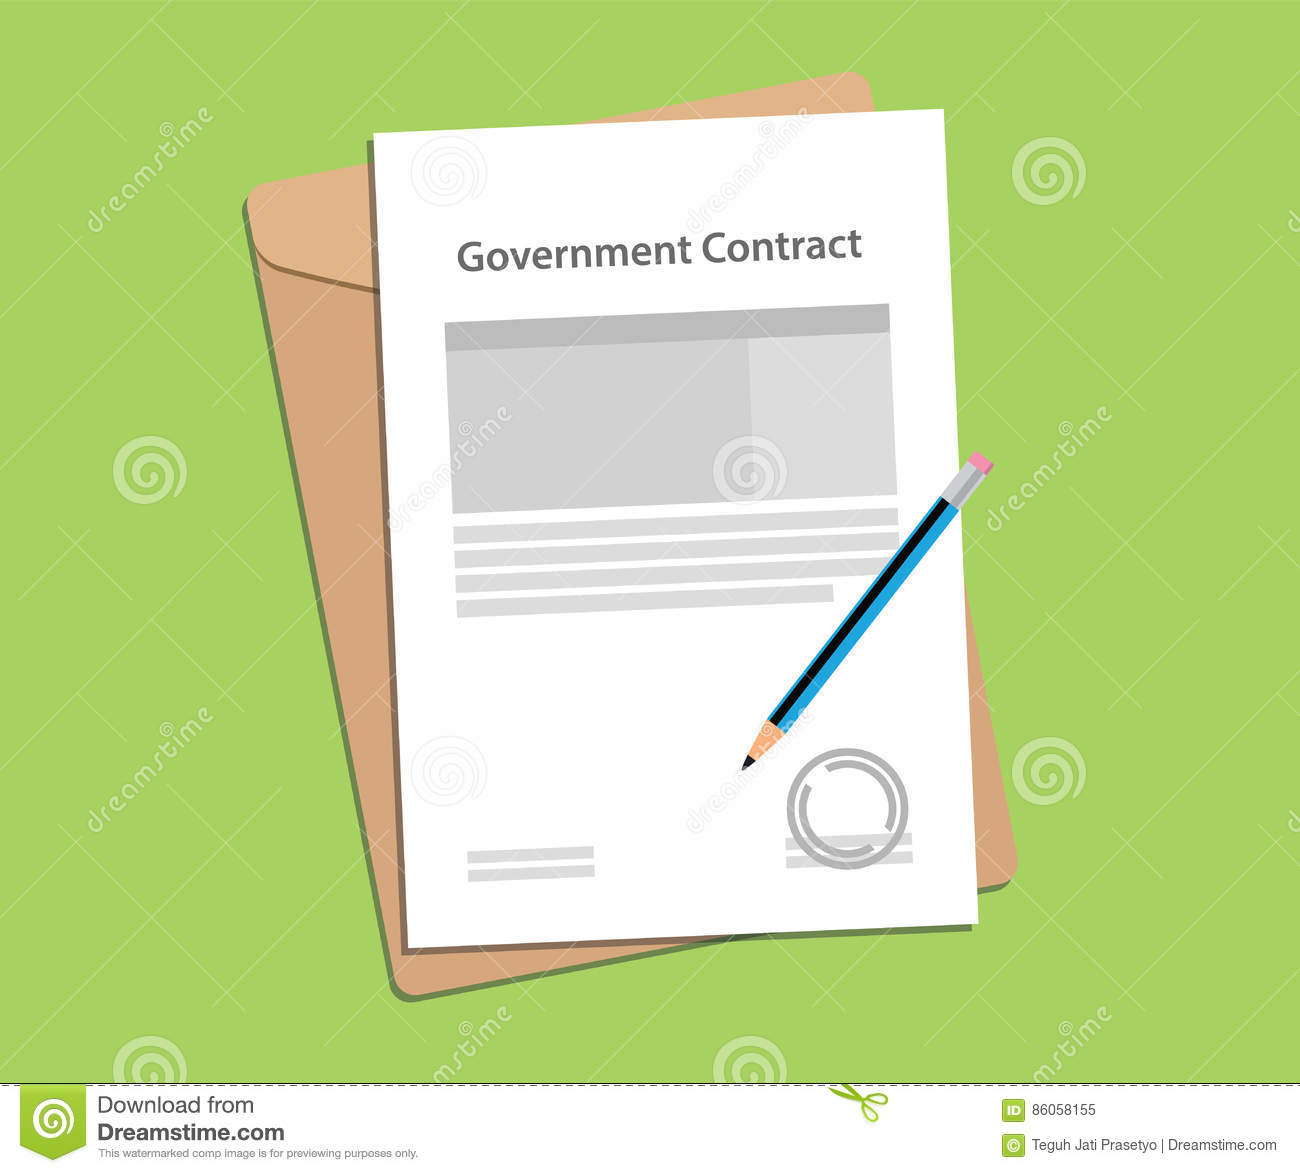 Government Contract Letter Concept With Stamp, Folder Document And A Blue  Pen